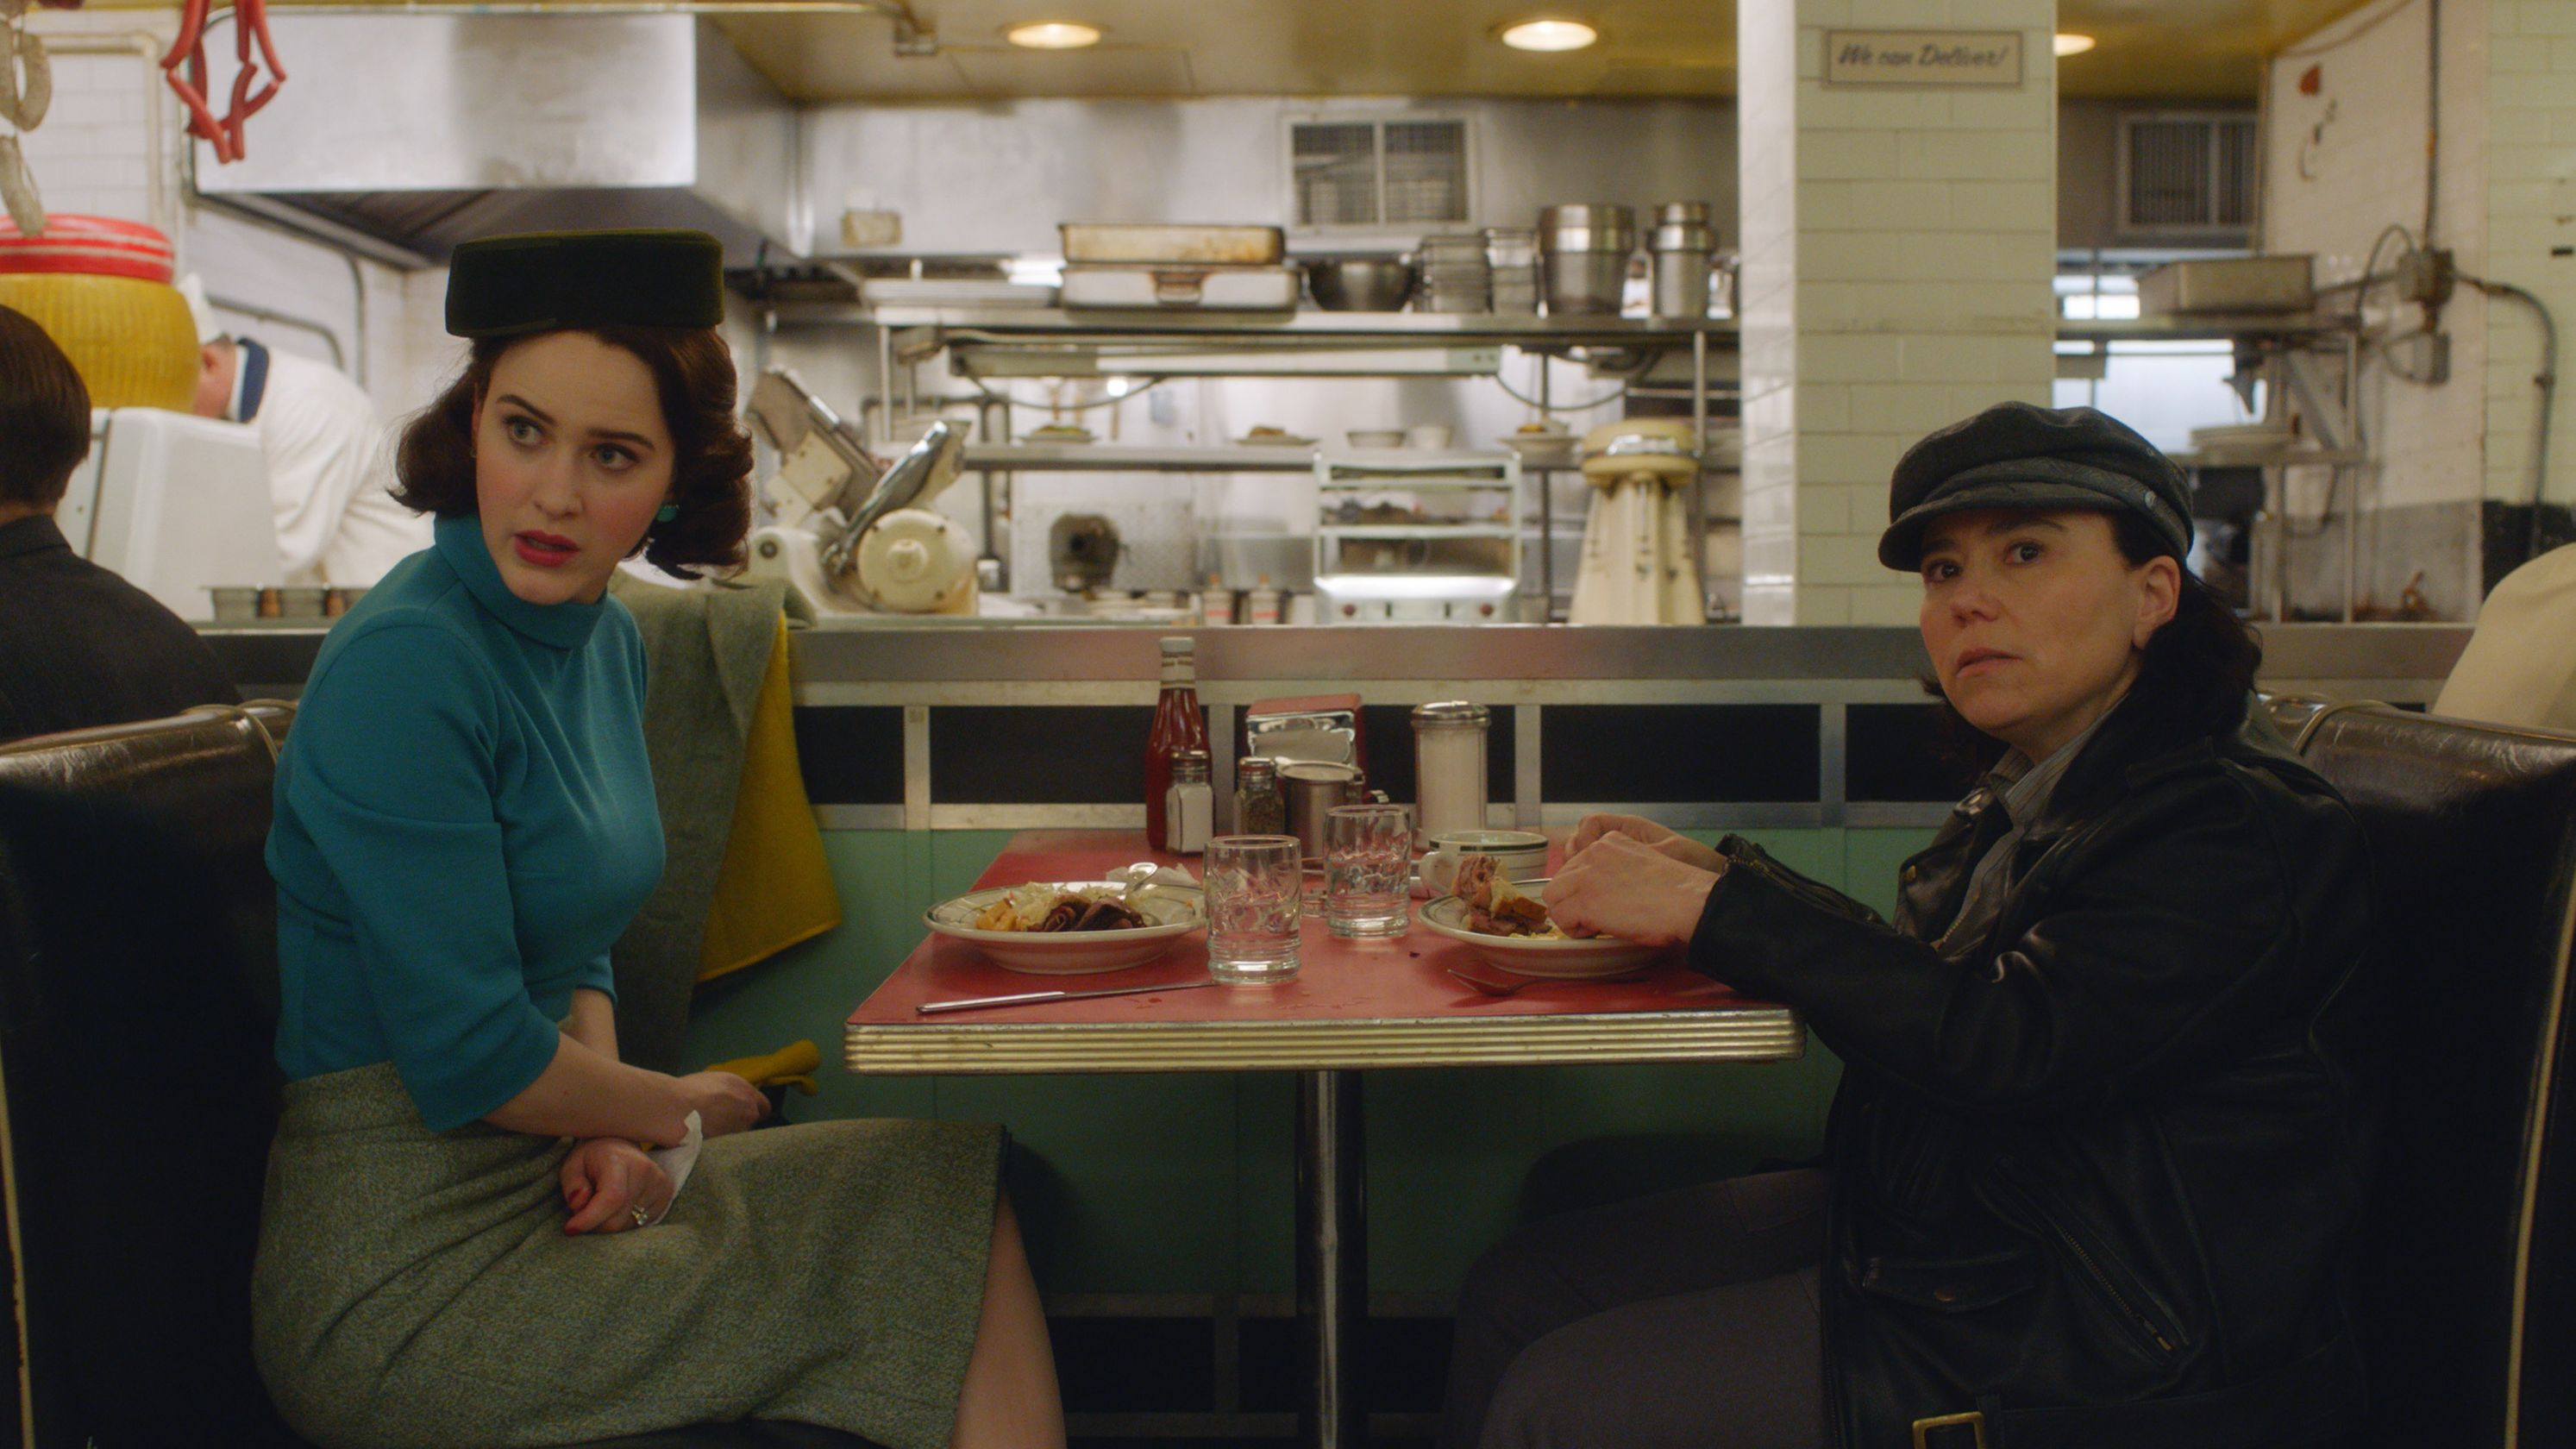 'Marvelous Mrs. Maisel' team on Paris, pastrami and why Season 2 story is 'still relevant'